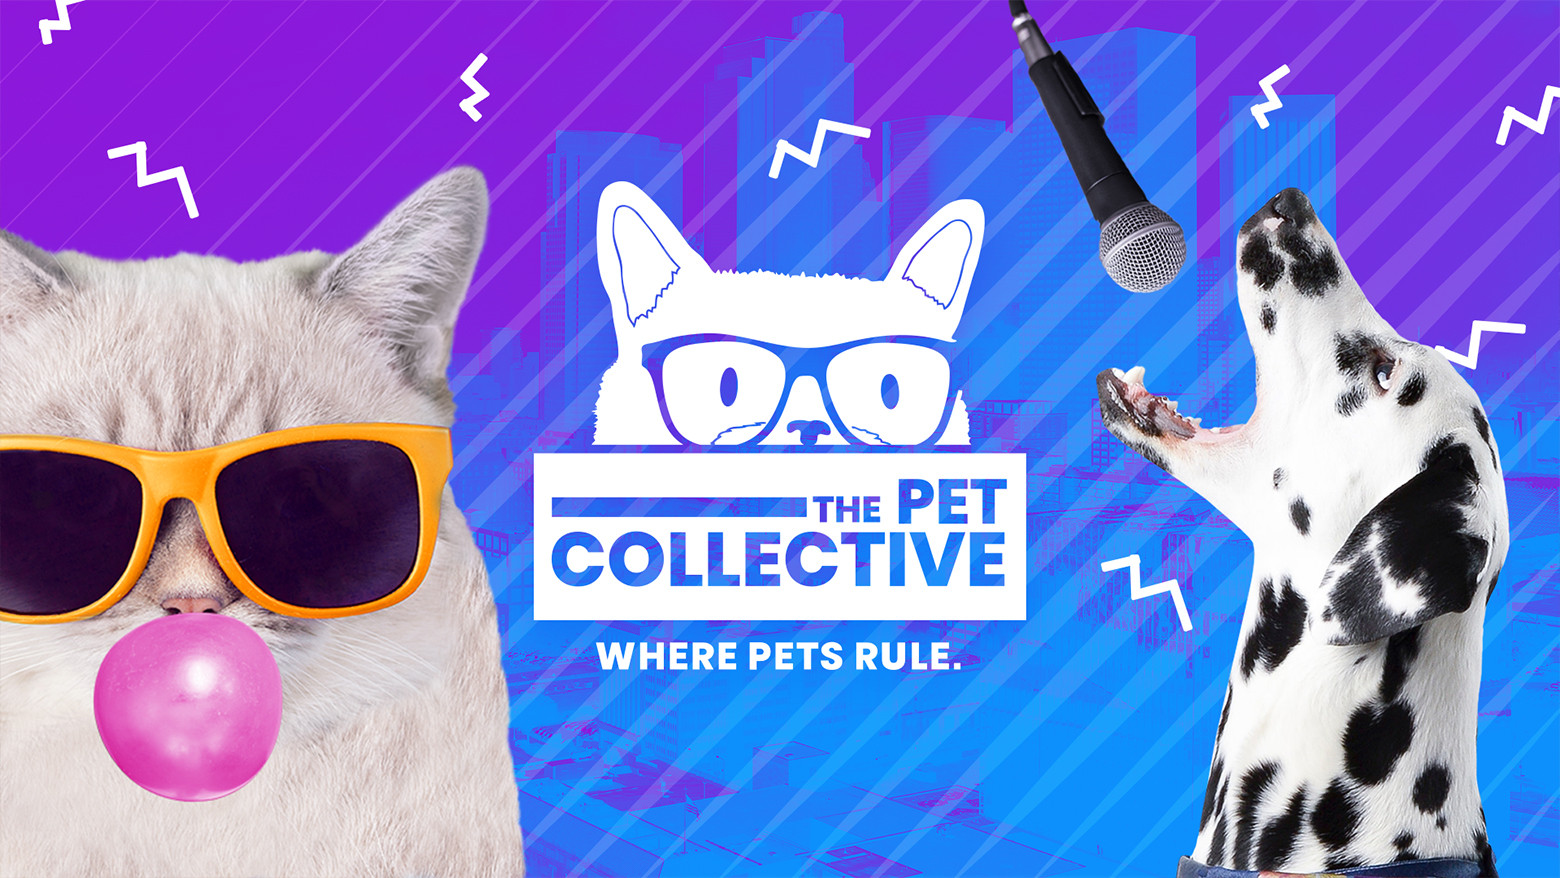 The Pet Collective